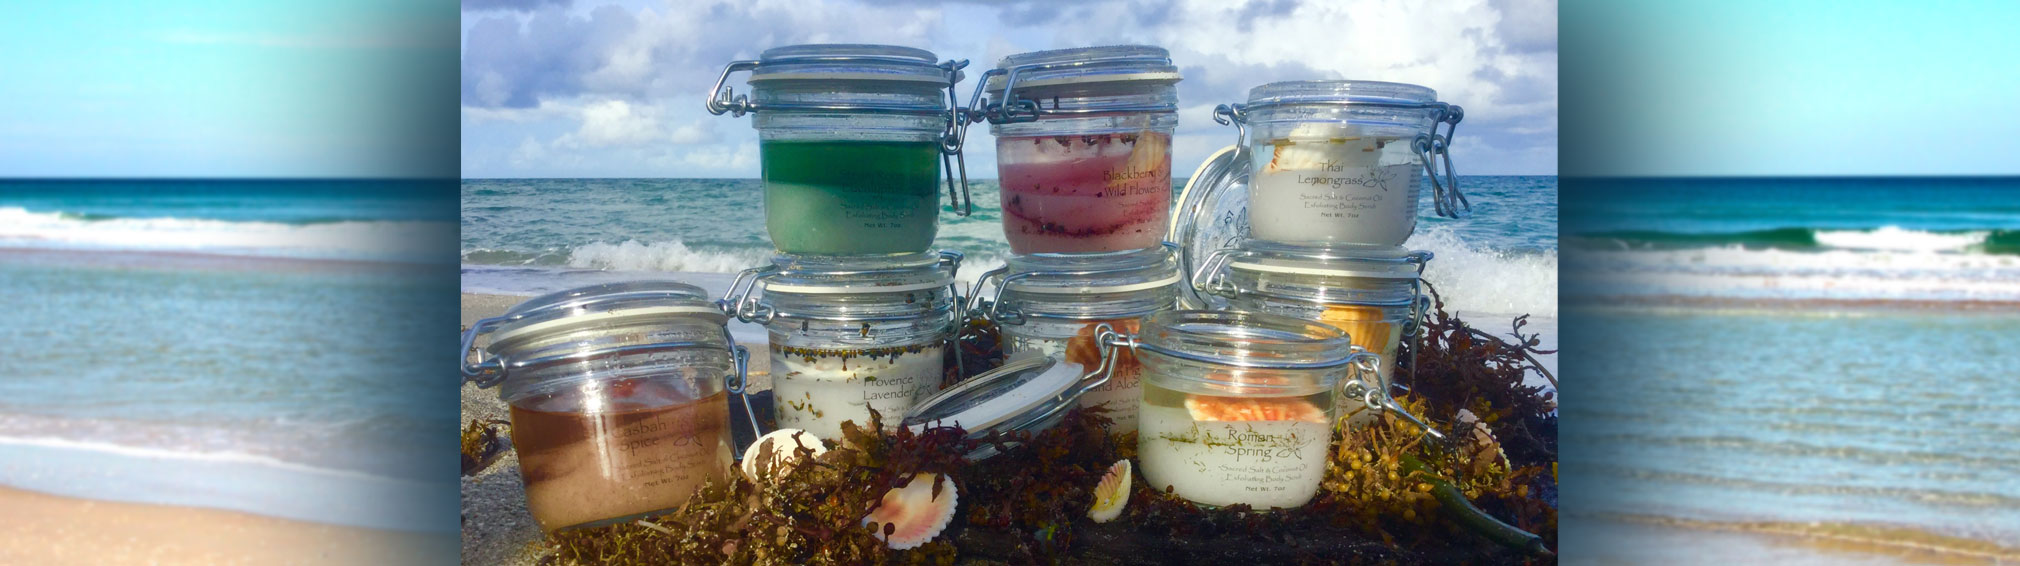 coconut-oil-body-scrubs-group